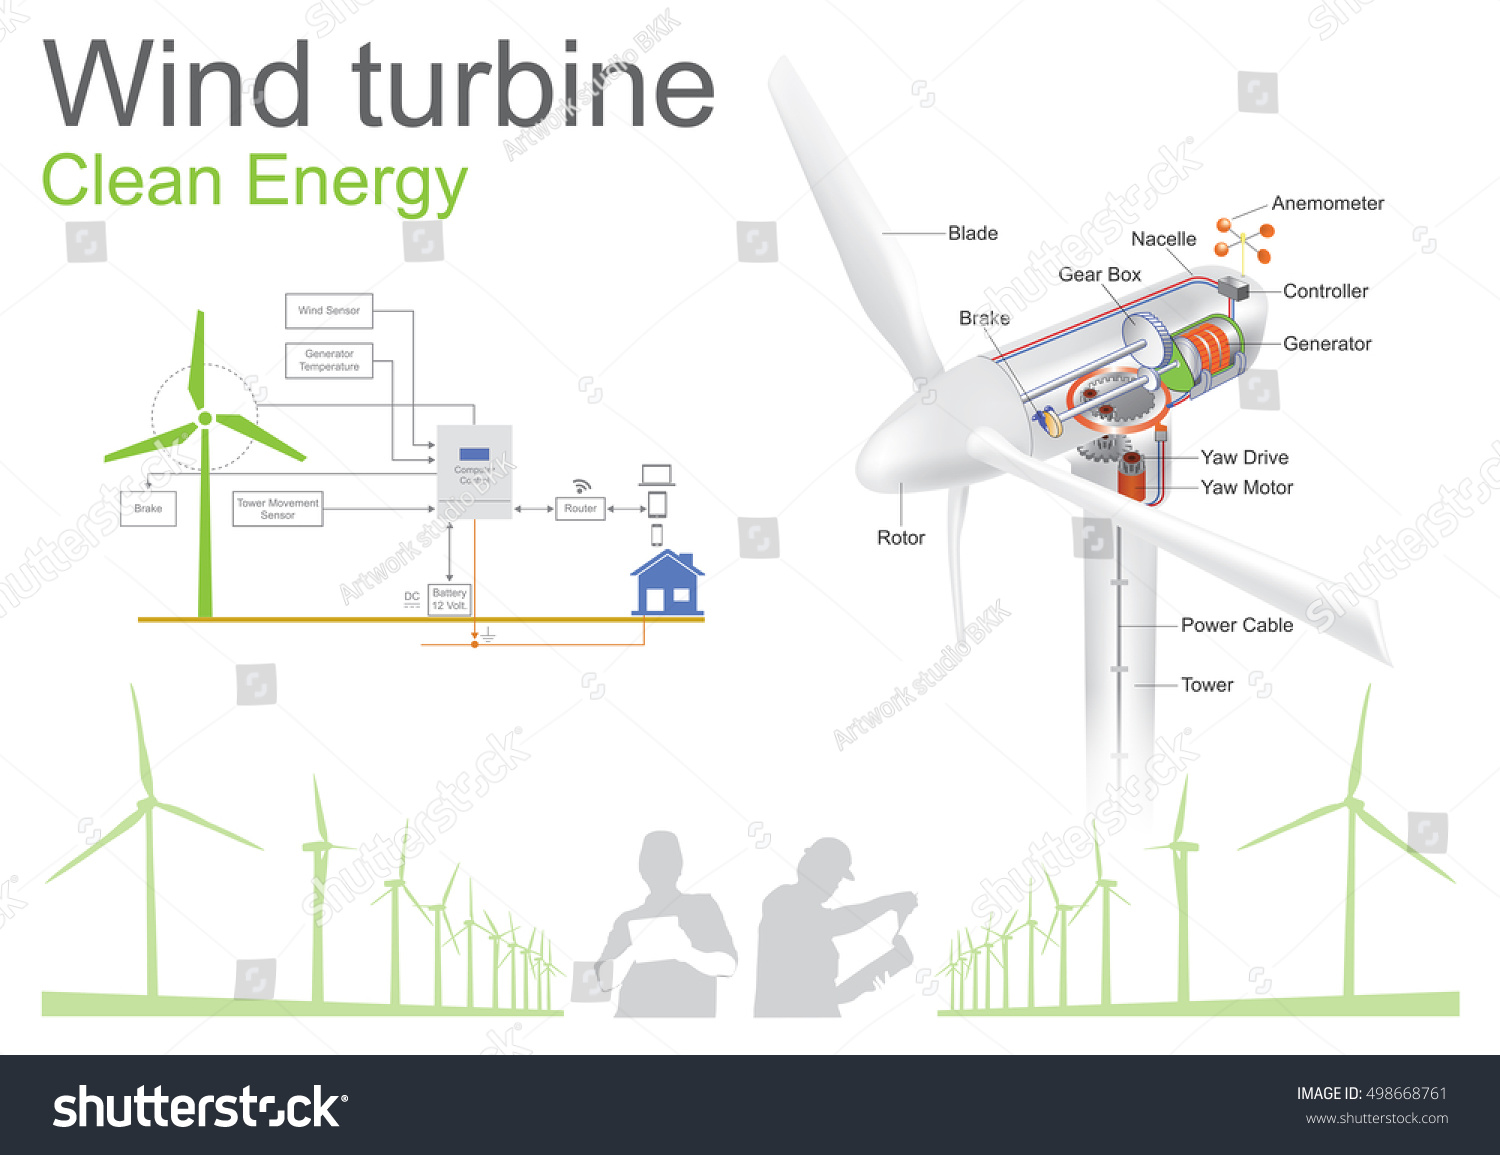 Wind Turbine Structure Clean Energy Illustration Stock Vector Power Diagrams